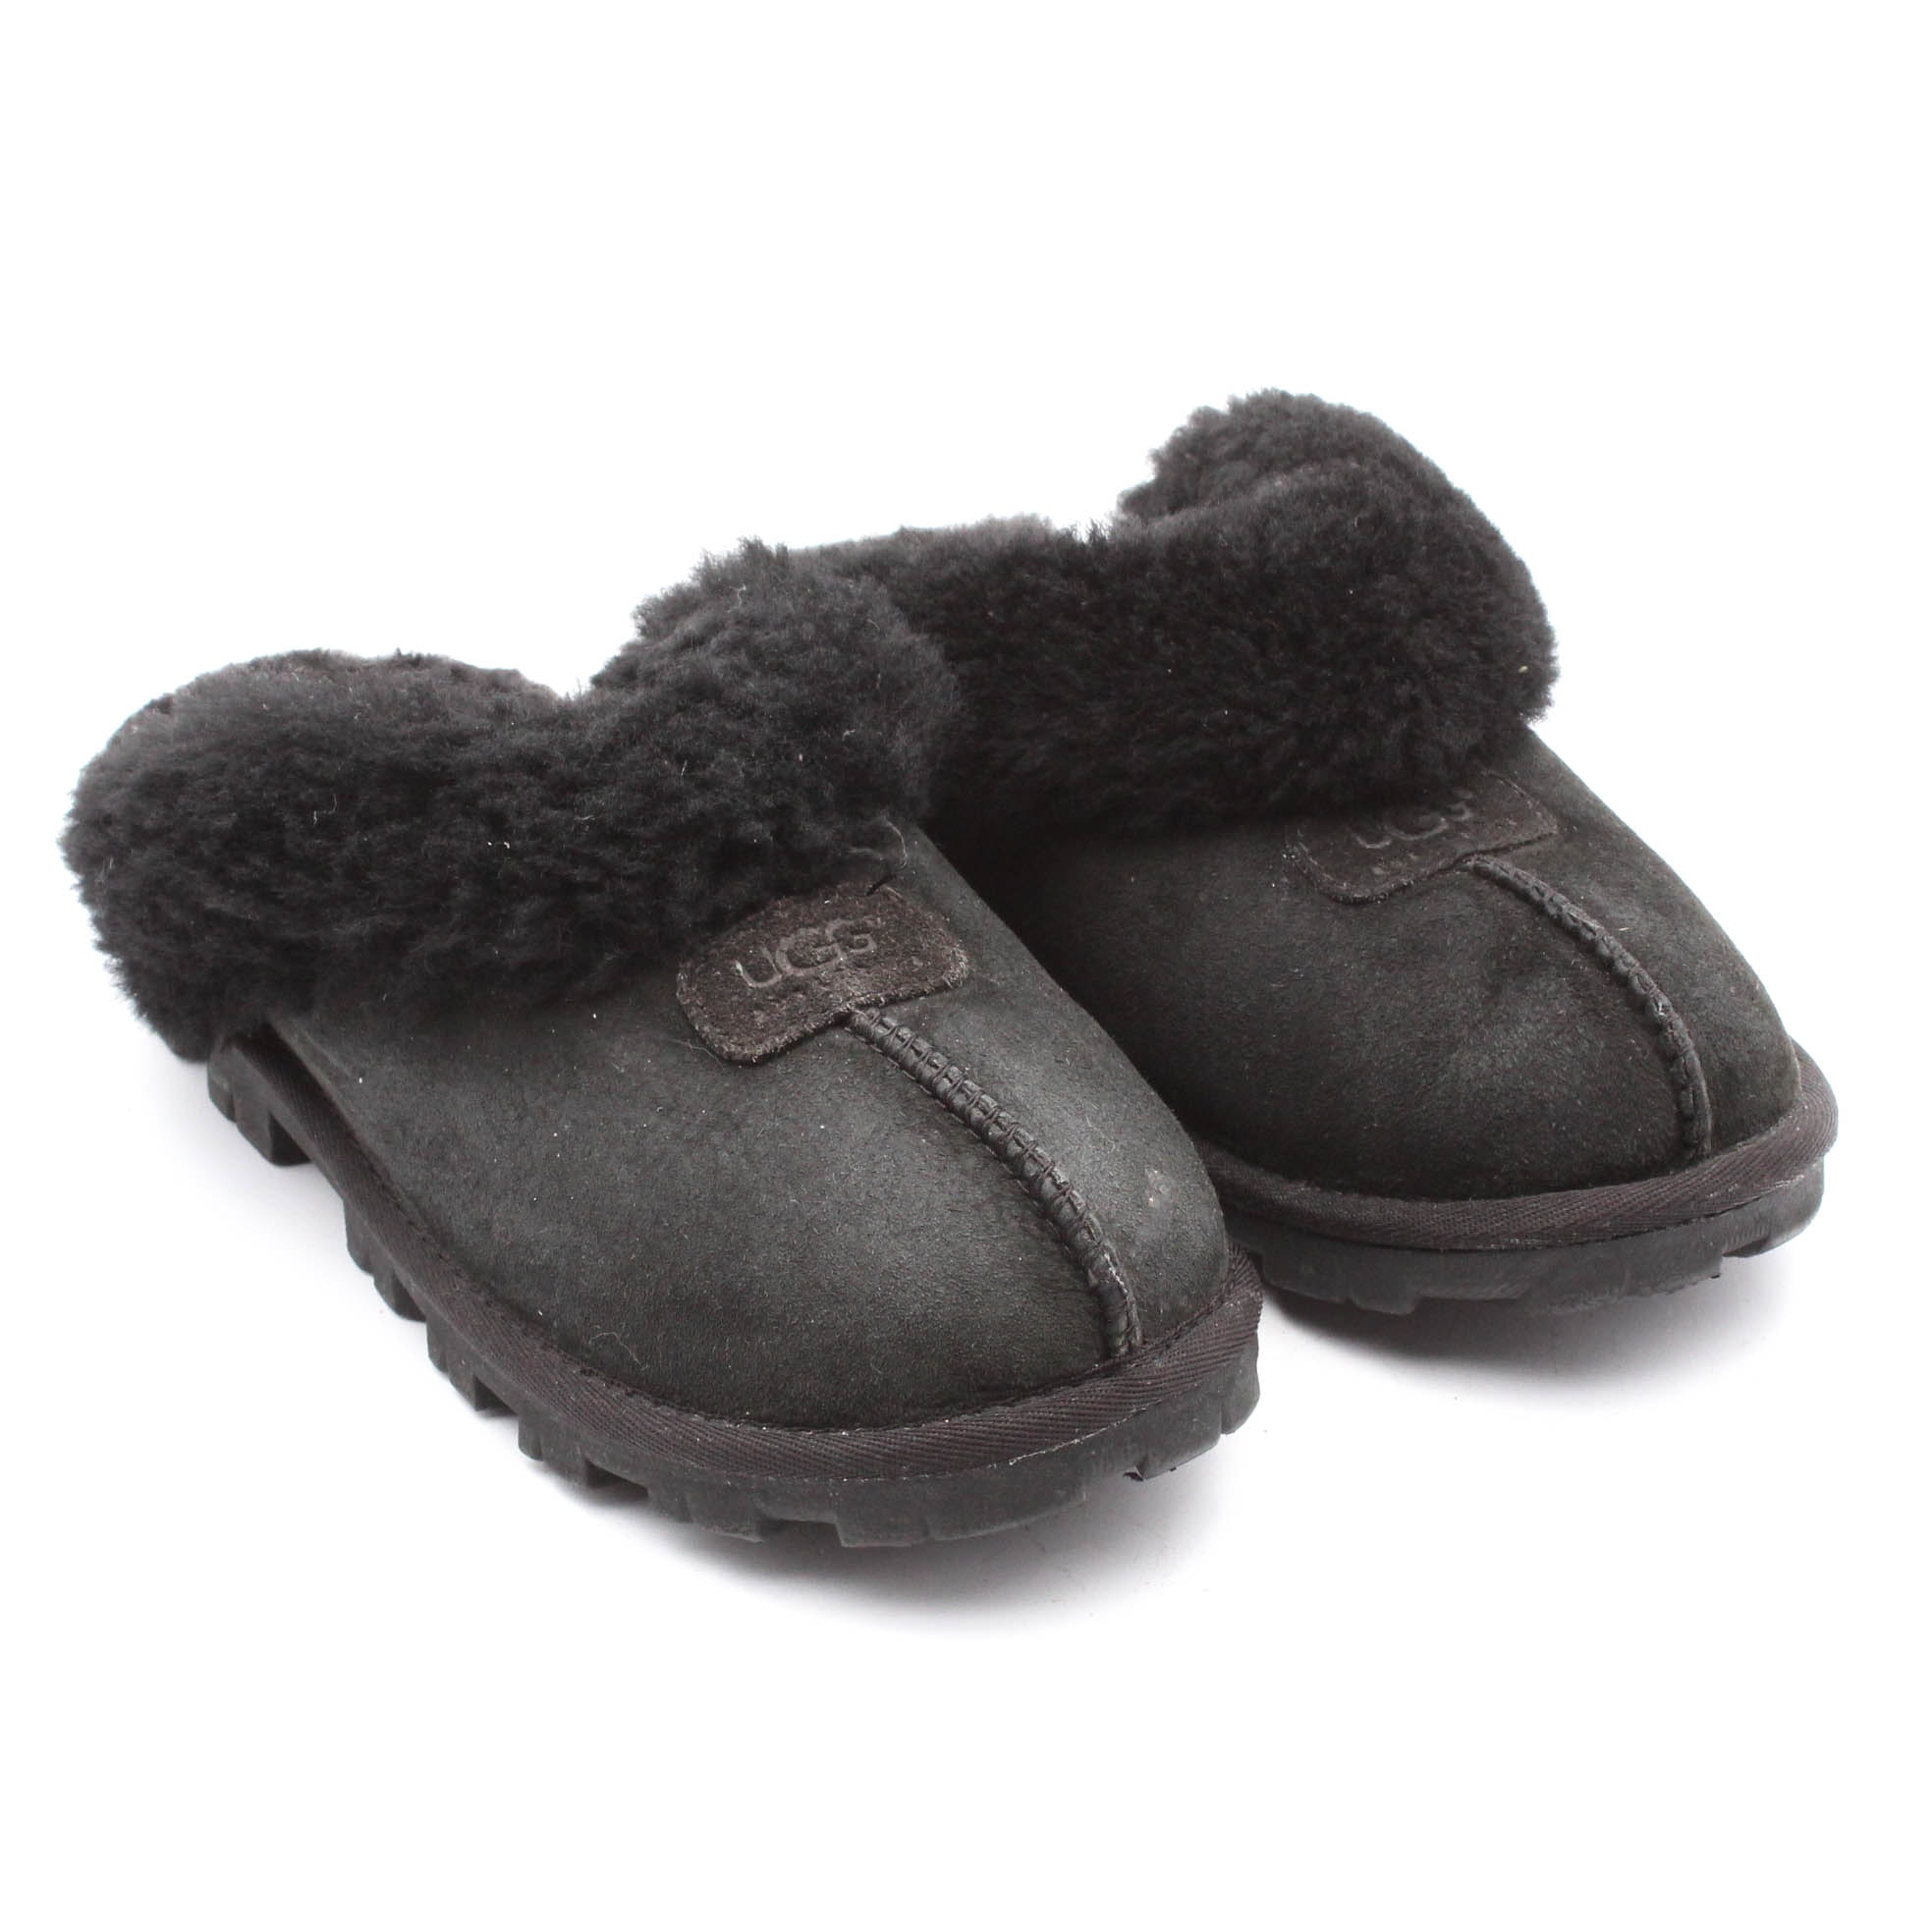 Women's UGG Australia Coquette Suede and Sheepskin Slippers